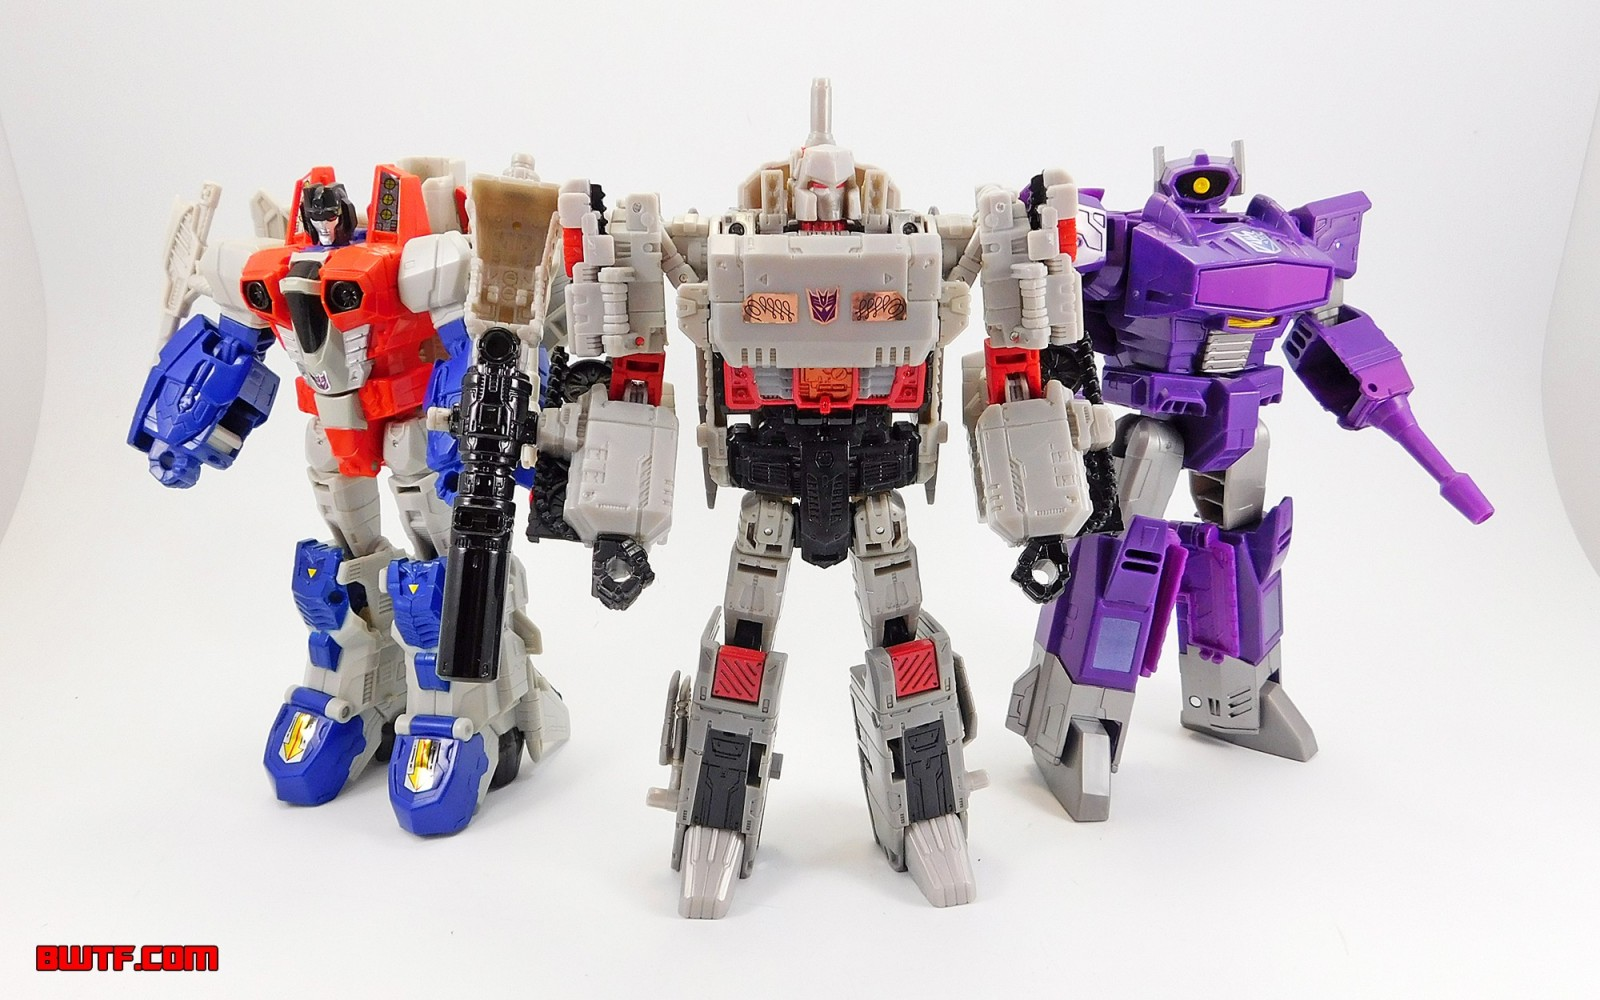 Transformers News: Top 5 G1 Transformers Characters we Want to See in War for Cybertron Trilogy Toylines